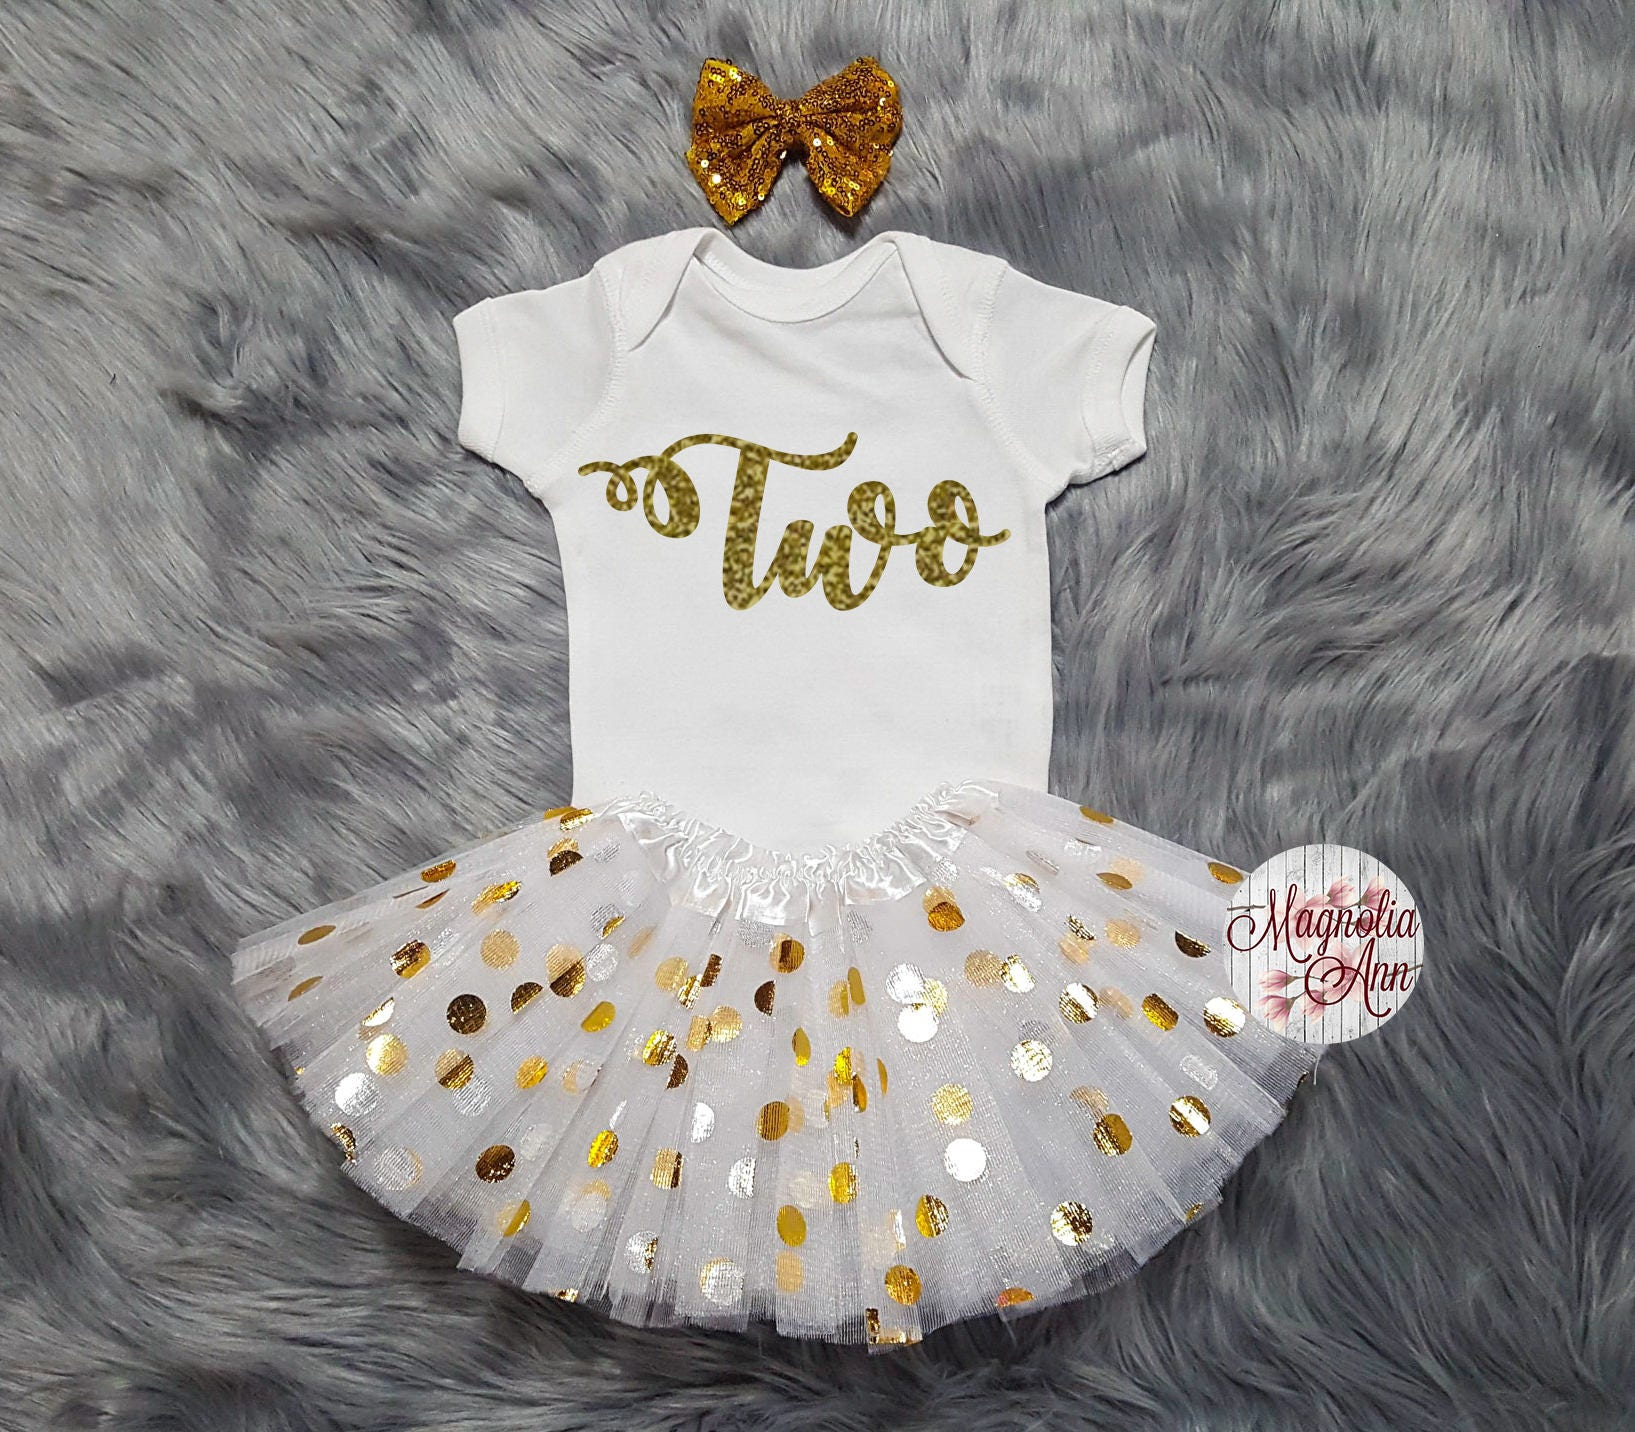 Two 2nd Birthday Onesie Tutu Outfit Toddler Shirt Girl 2 Year Old Bday